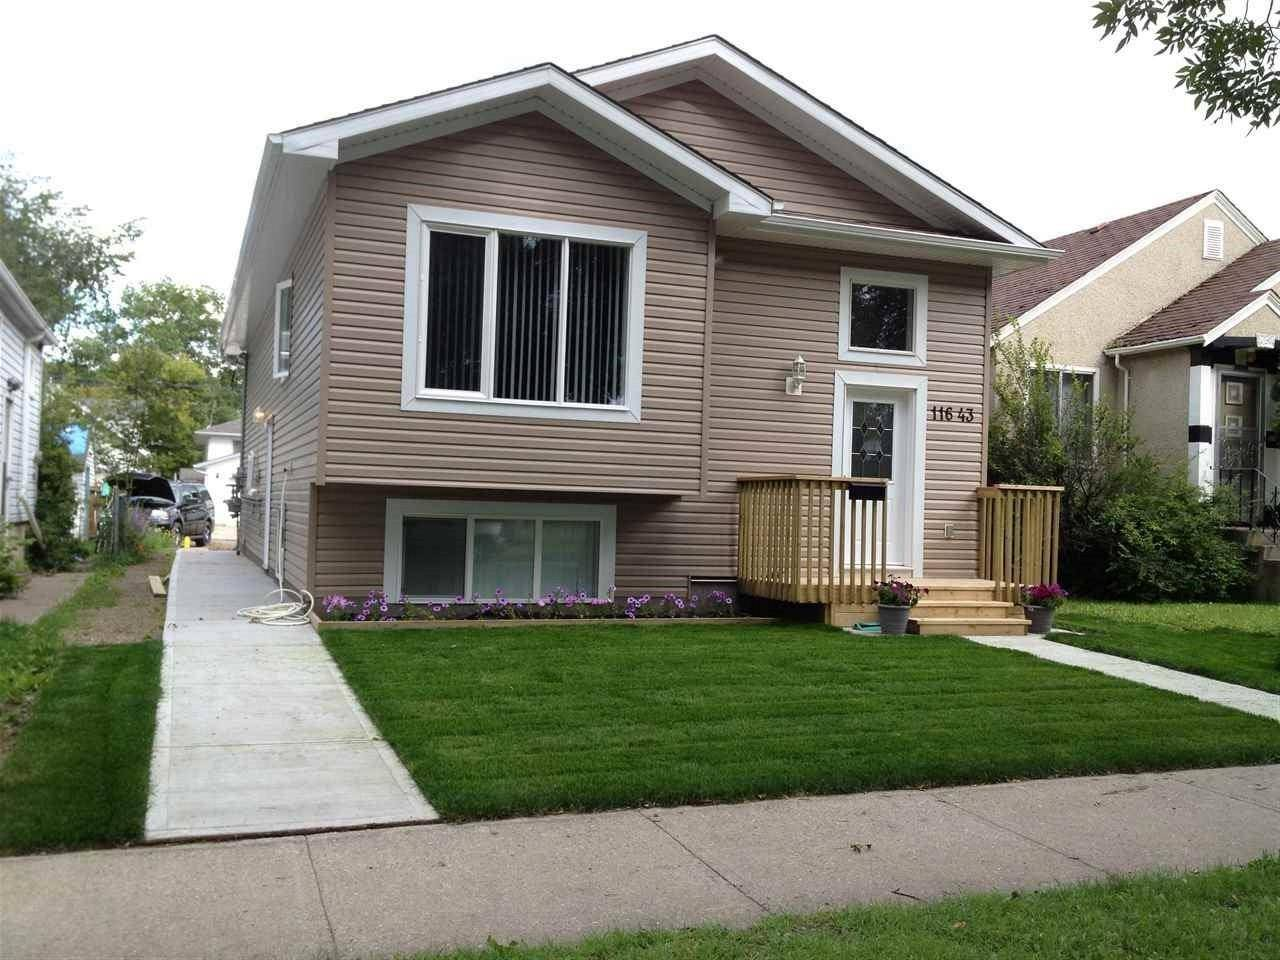 Townhouse for sale at 11643 94 St Nw Edmonton Alberta - MLS: E4194026